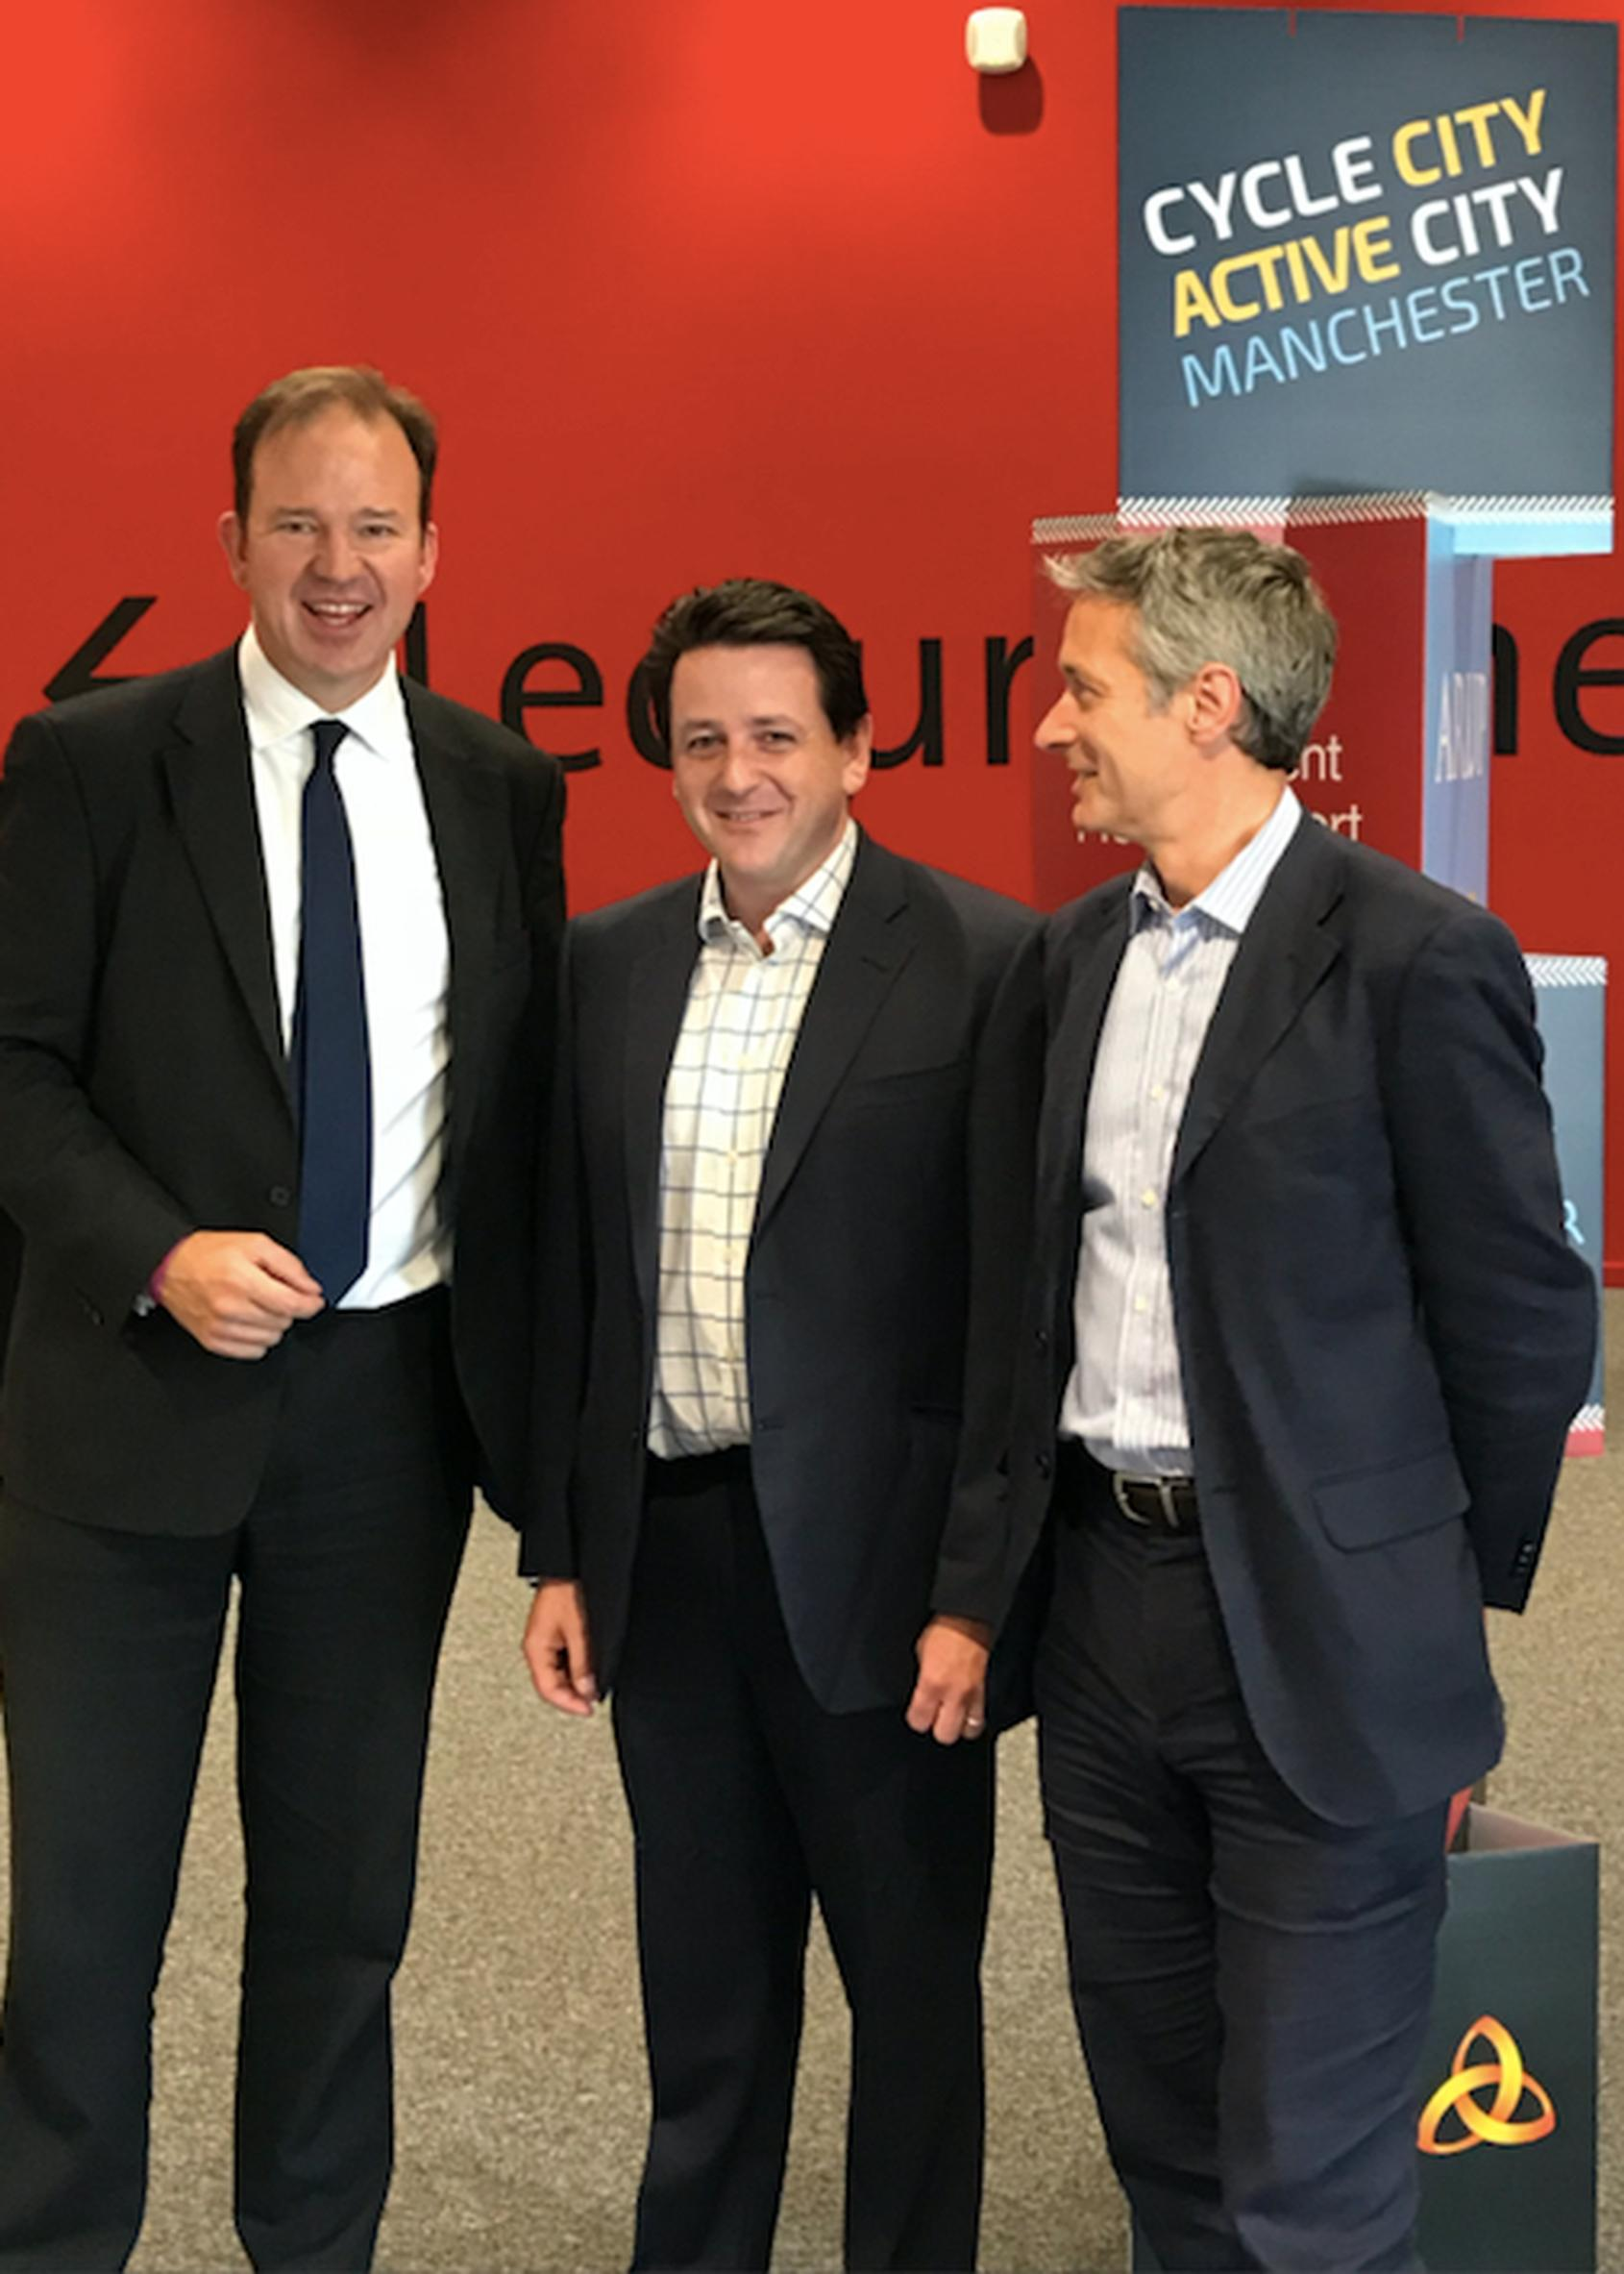 From left: transport minister Jesse Norman, Halfords` James Arnold, and Paul Robison of The Bikeability Trust at Cycle City Active City